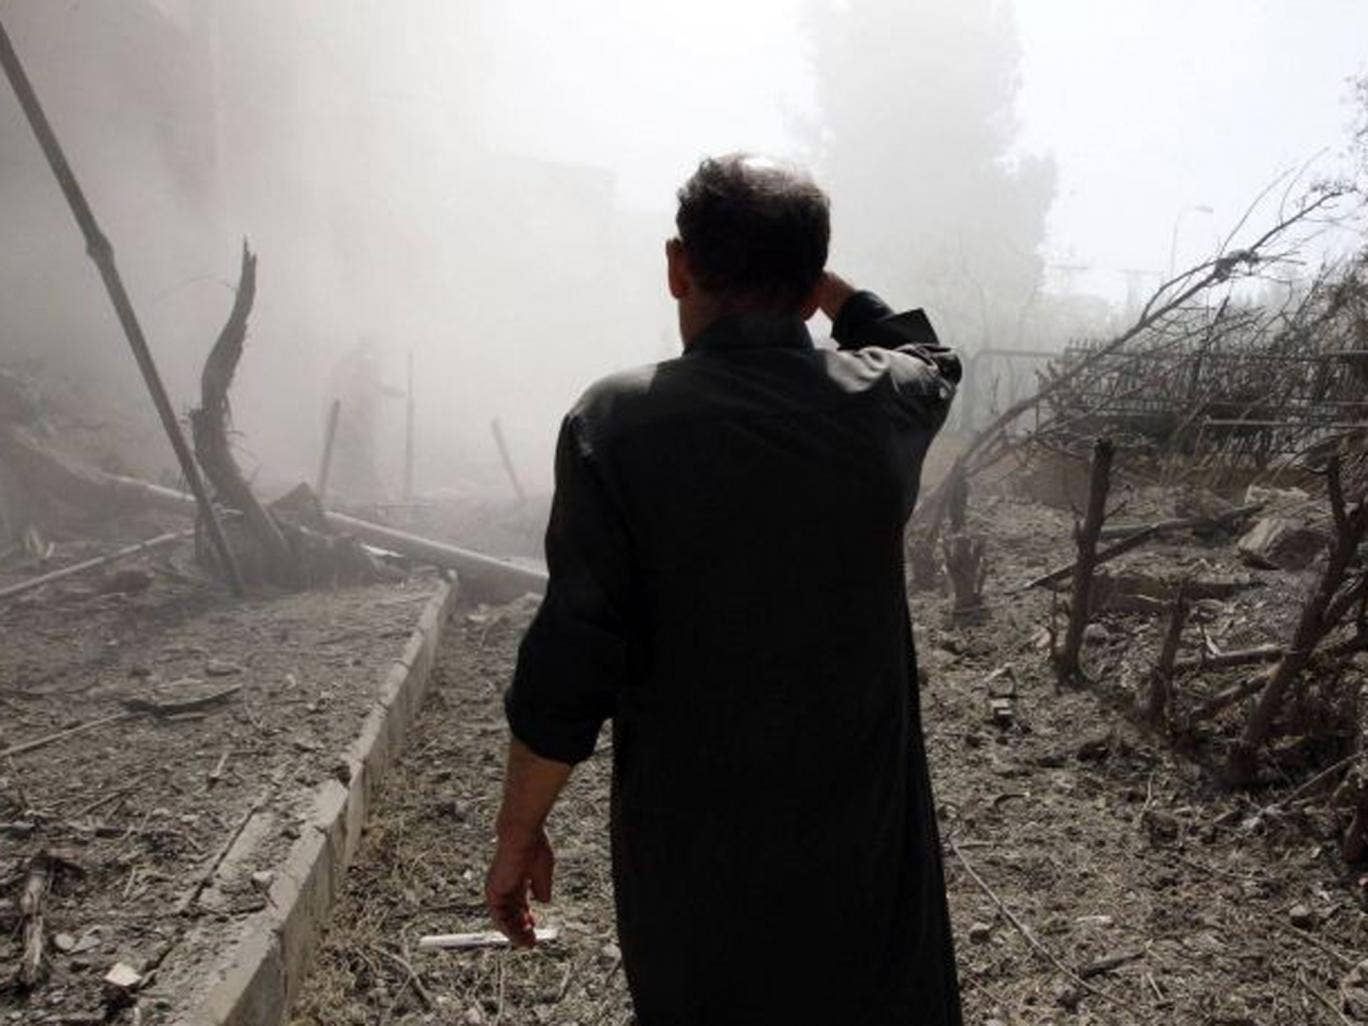 A man inspects a site hit by what activists said were missiles fired by Syrian Air Force fighter jets loyal to President Bashar al-Assad, in Raqqa province, eastern Syria  on 21 August 2013